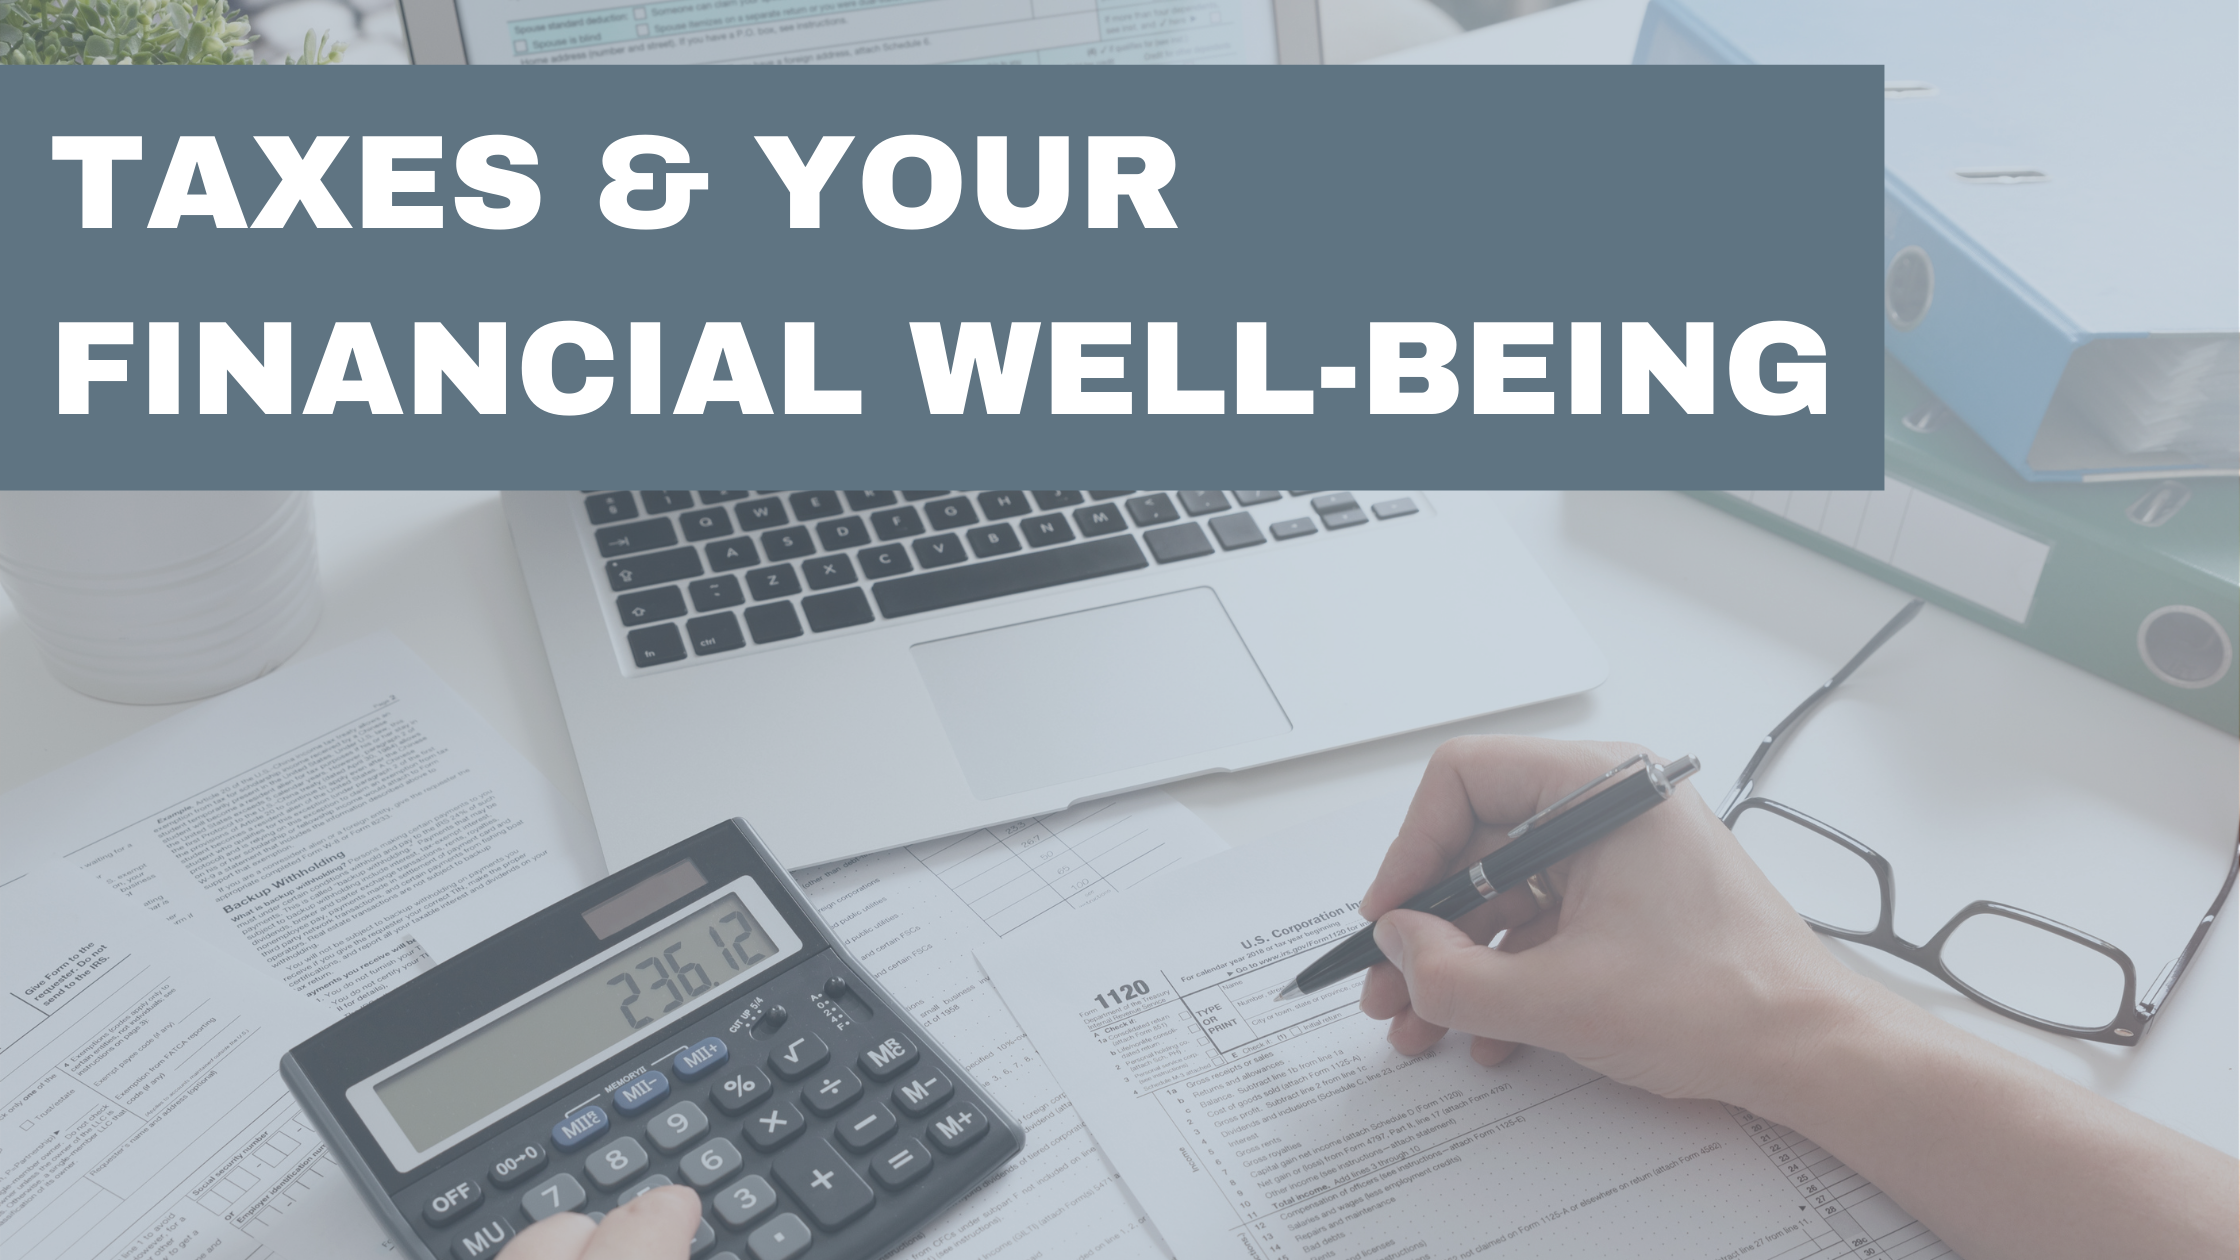 Are Taxes The Biggest Drain On Your Financial Well-Being? Thumbnail